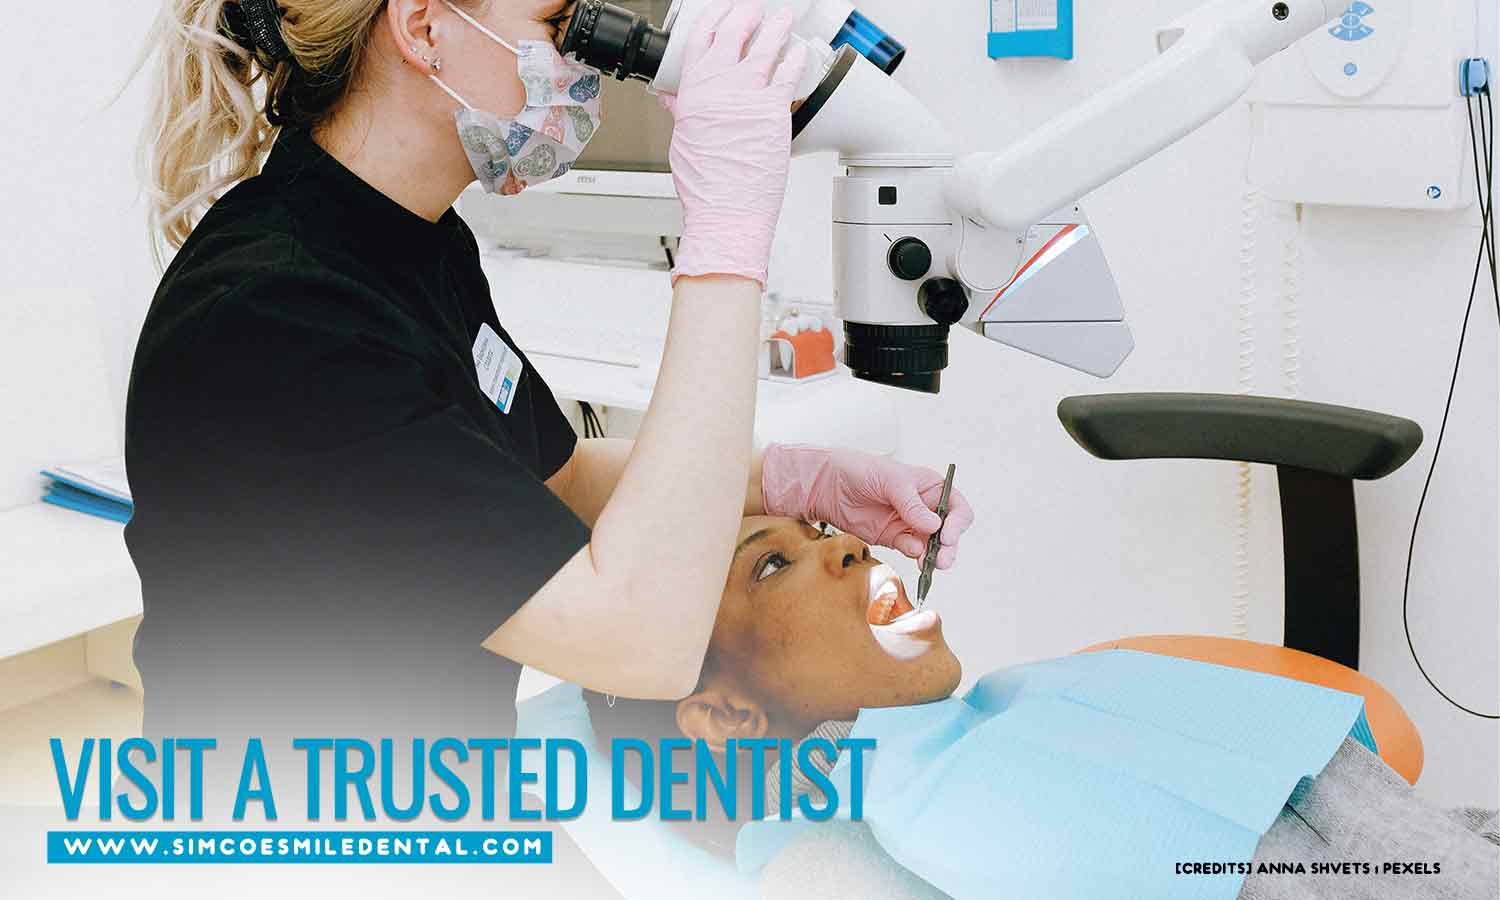 Visit-a-trusted-dentist What to Expect From Invisalign Treatment